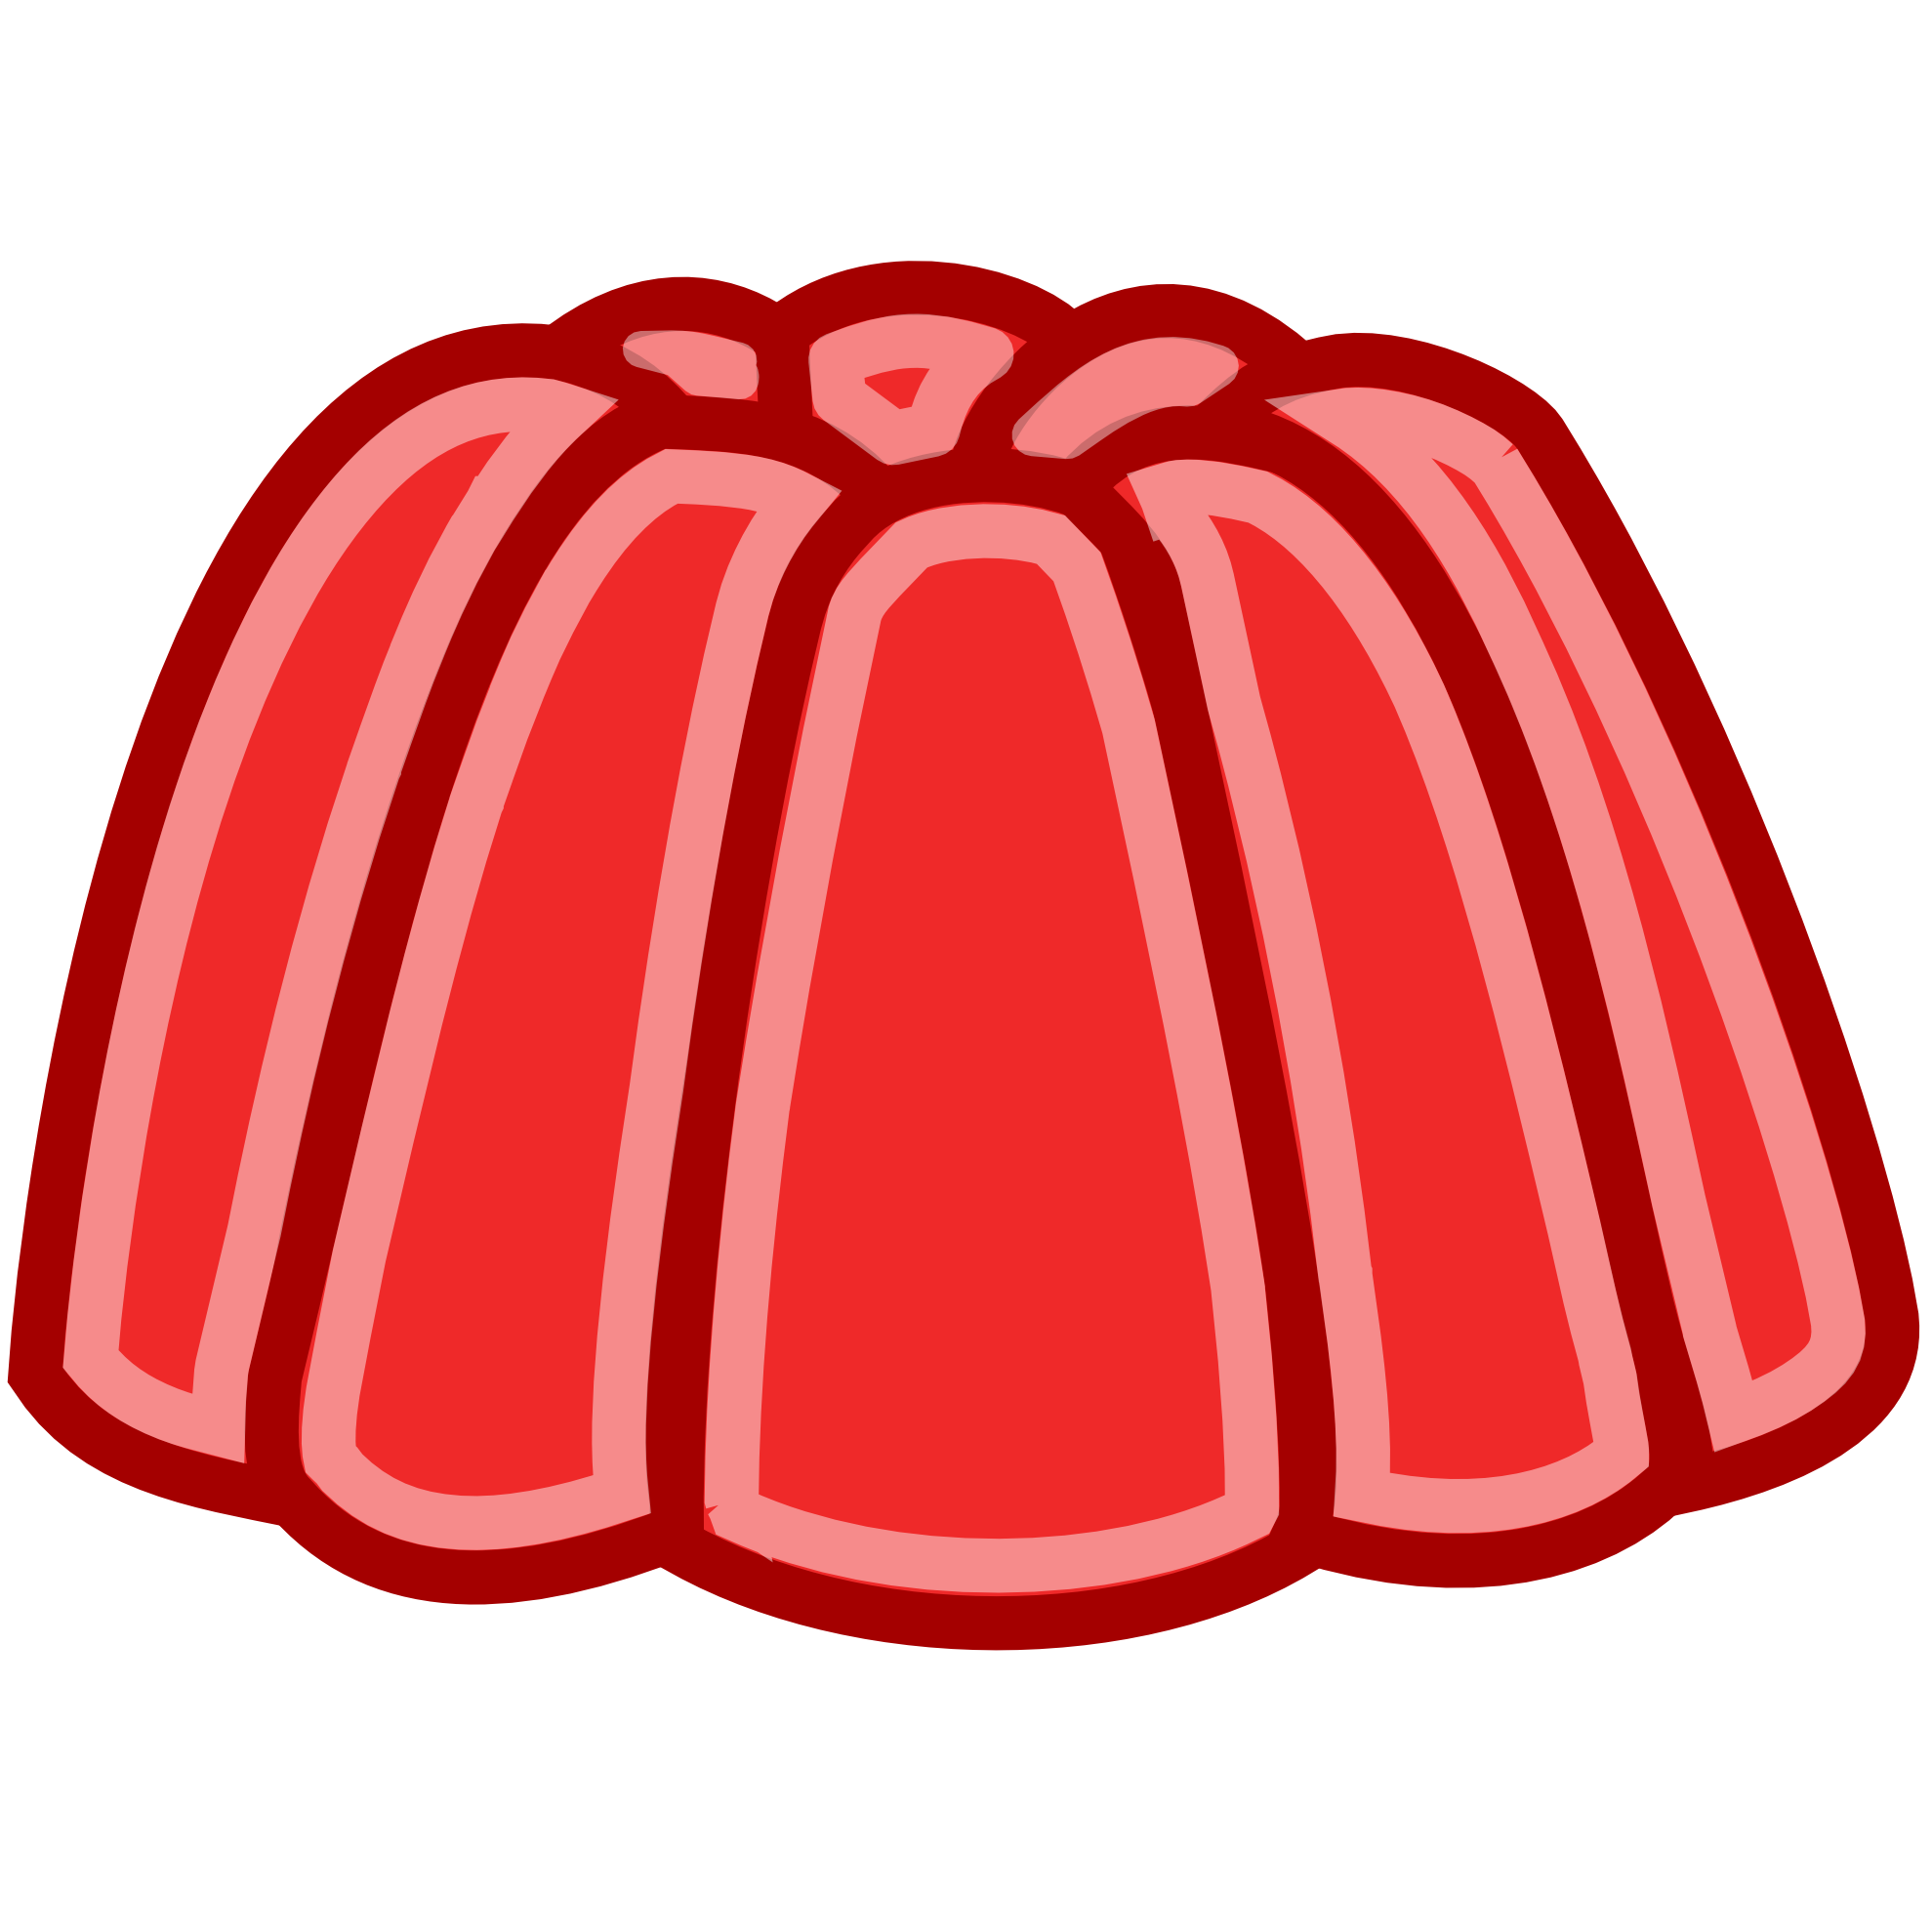 Jelly   Clipart Best